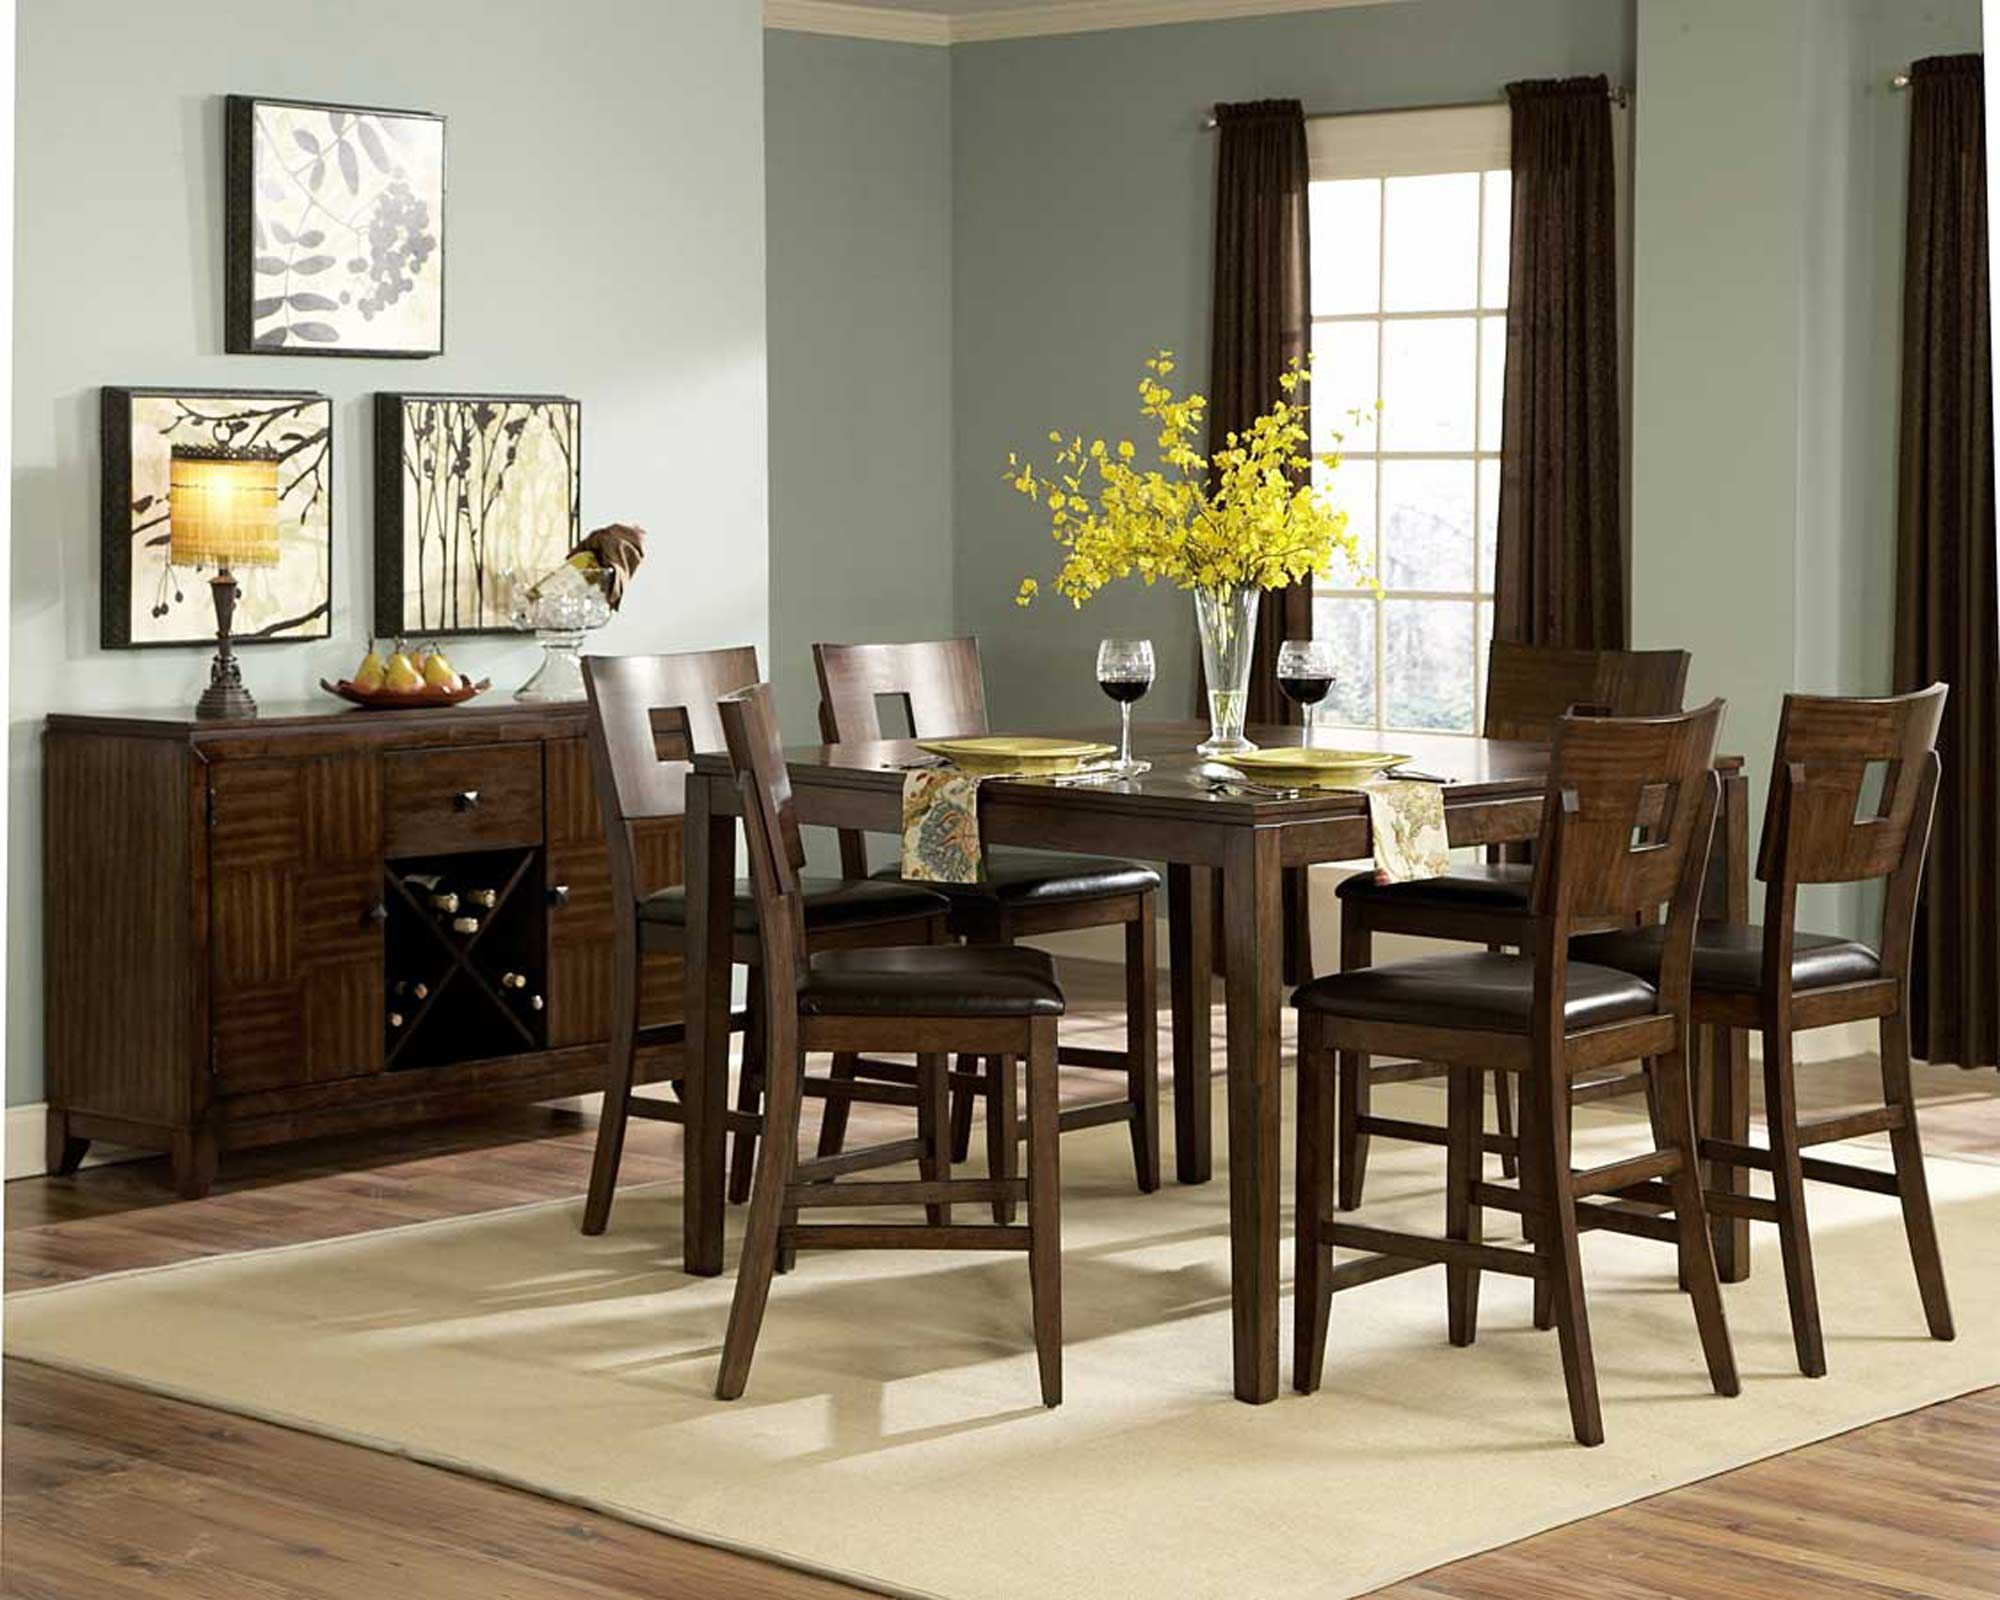 Diningroomdiyformaldiningroomtablecenterpiecesarrangements Enchanting Formal Contemporary Dining Room Sets 2018